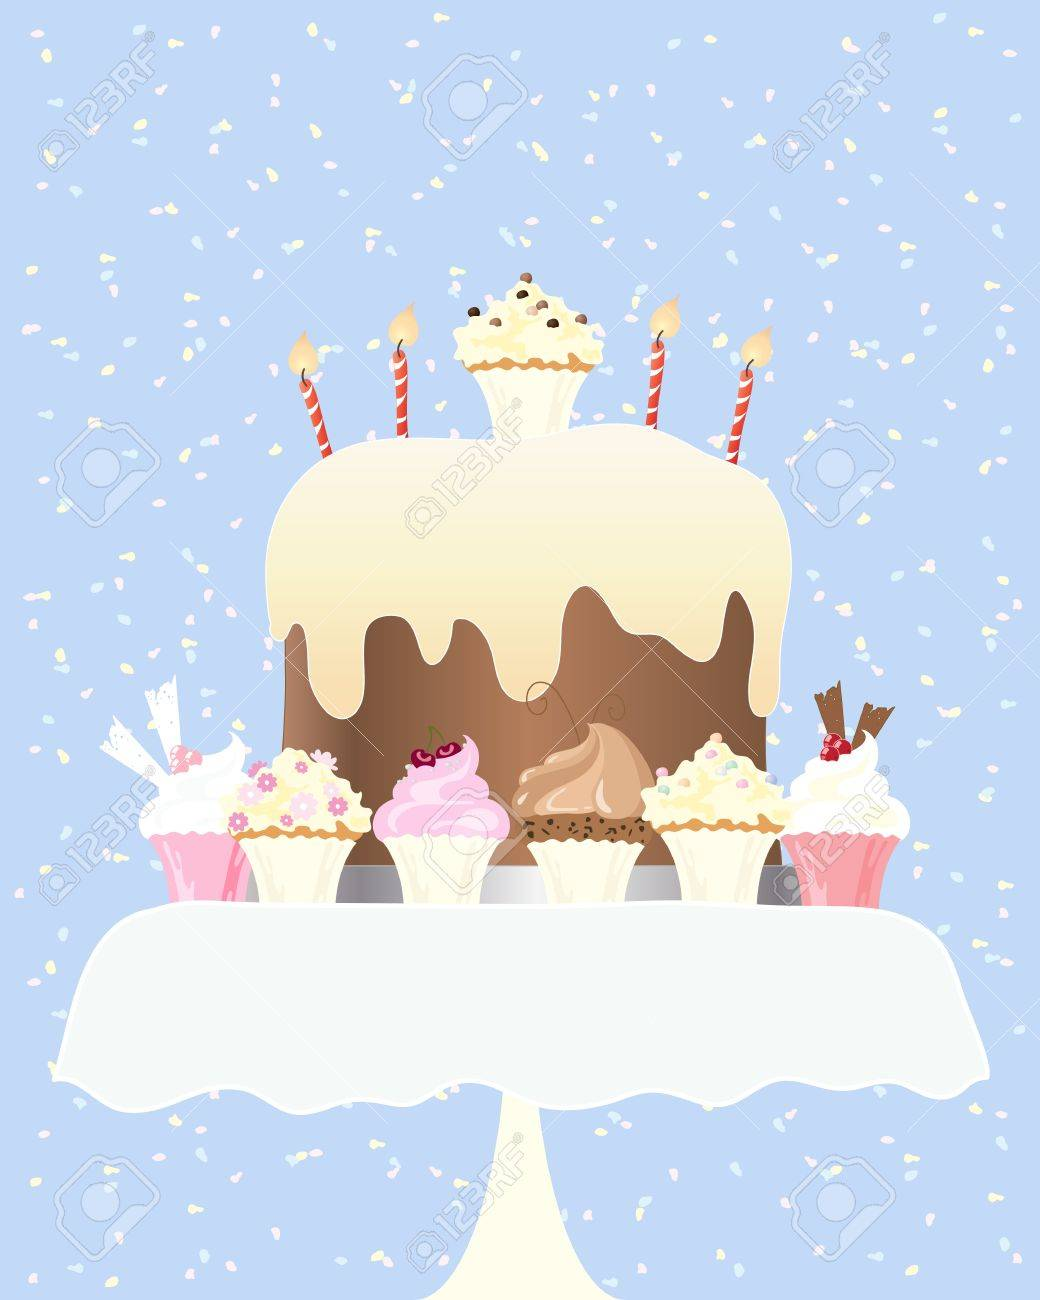 An Illustration Of A Big Birthday Cake With Candles And Delicious Cupcakes On Small Table